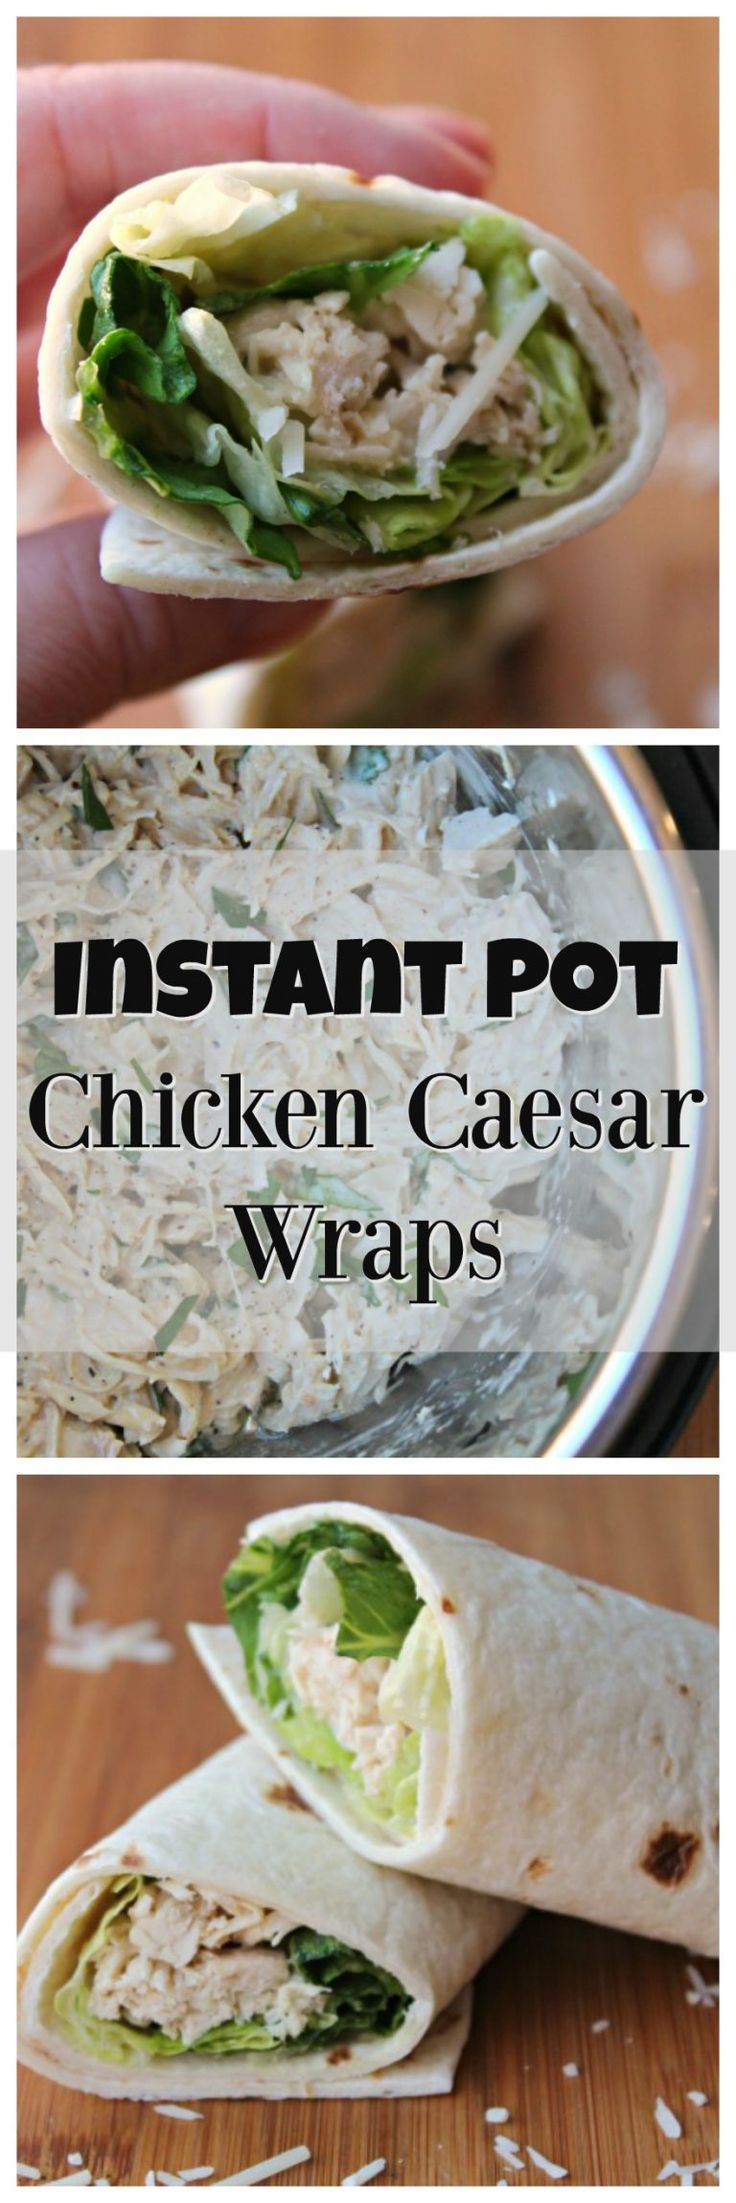 Instant Pot Chicken Caesar Wraps - Shredded Caesar Chicken made from FROZEN chicken, straight from the freezer with only 25 minutes in the Instant Pot. (Breaded Chicken Wrap)